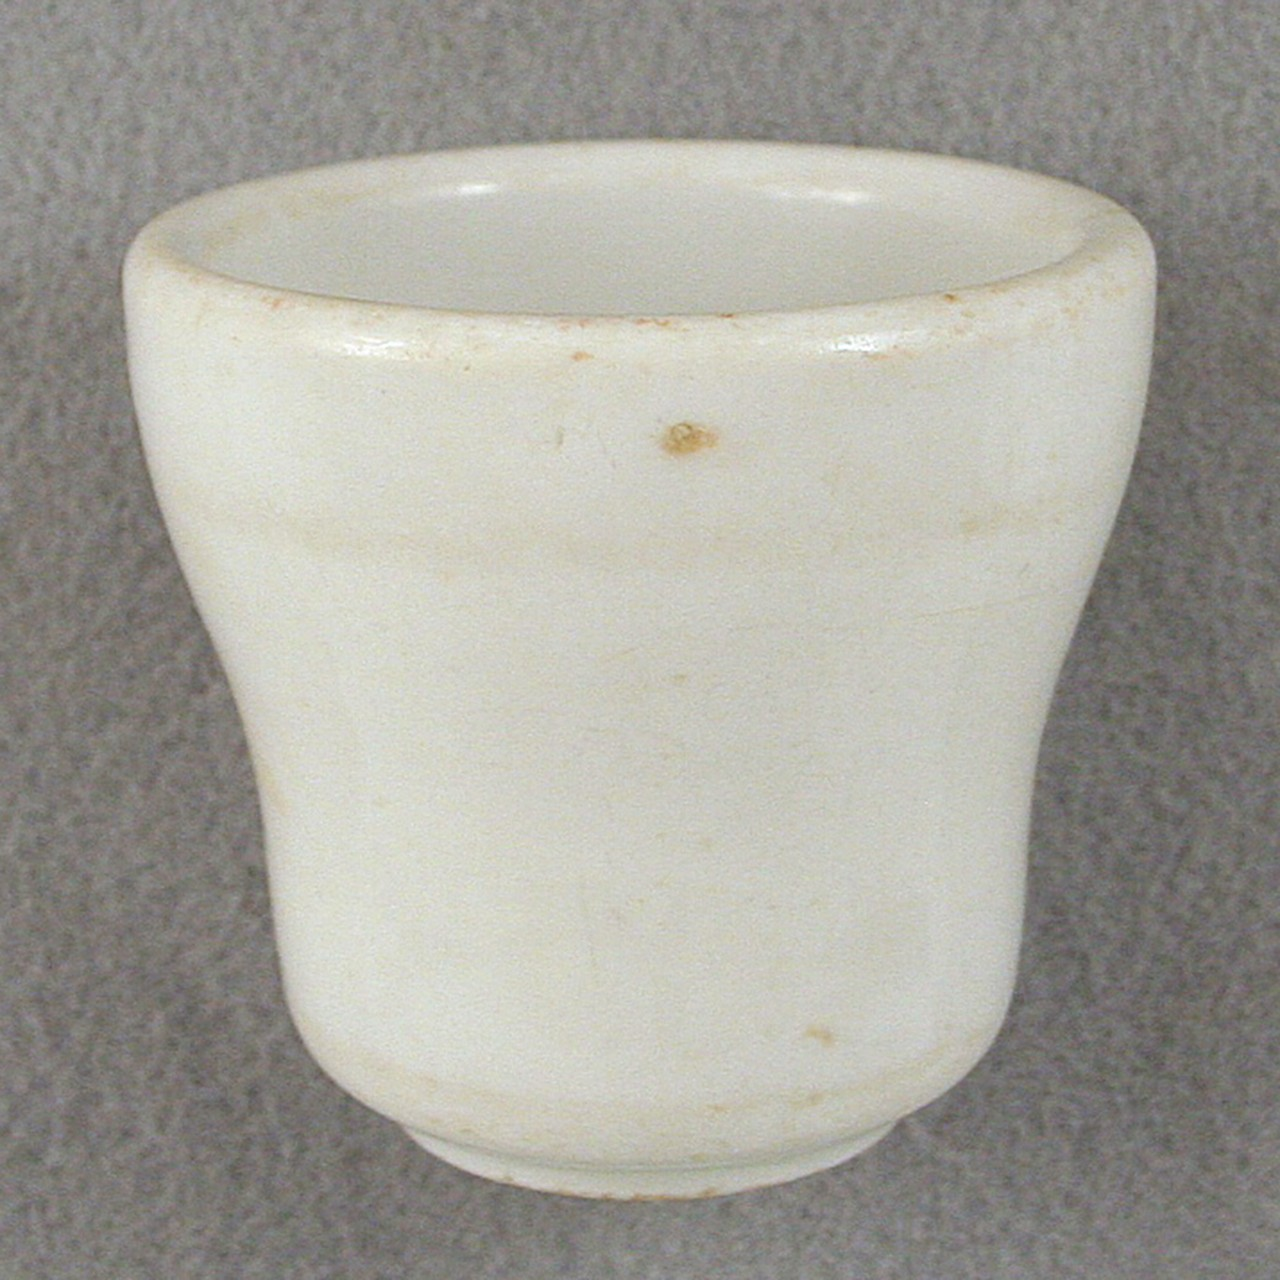 An undecorated white glazed stoneware cup from USS San Diego.